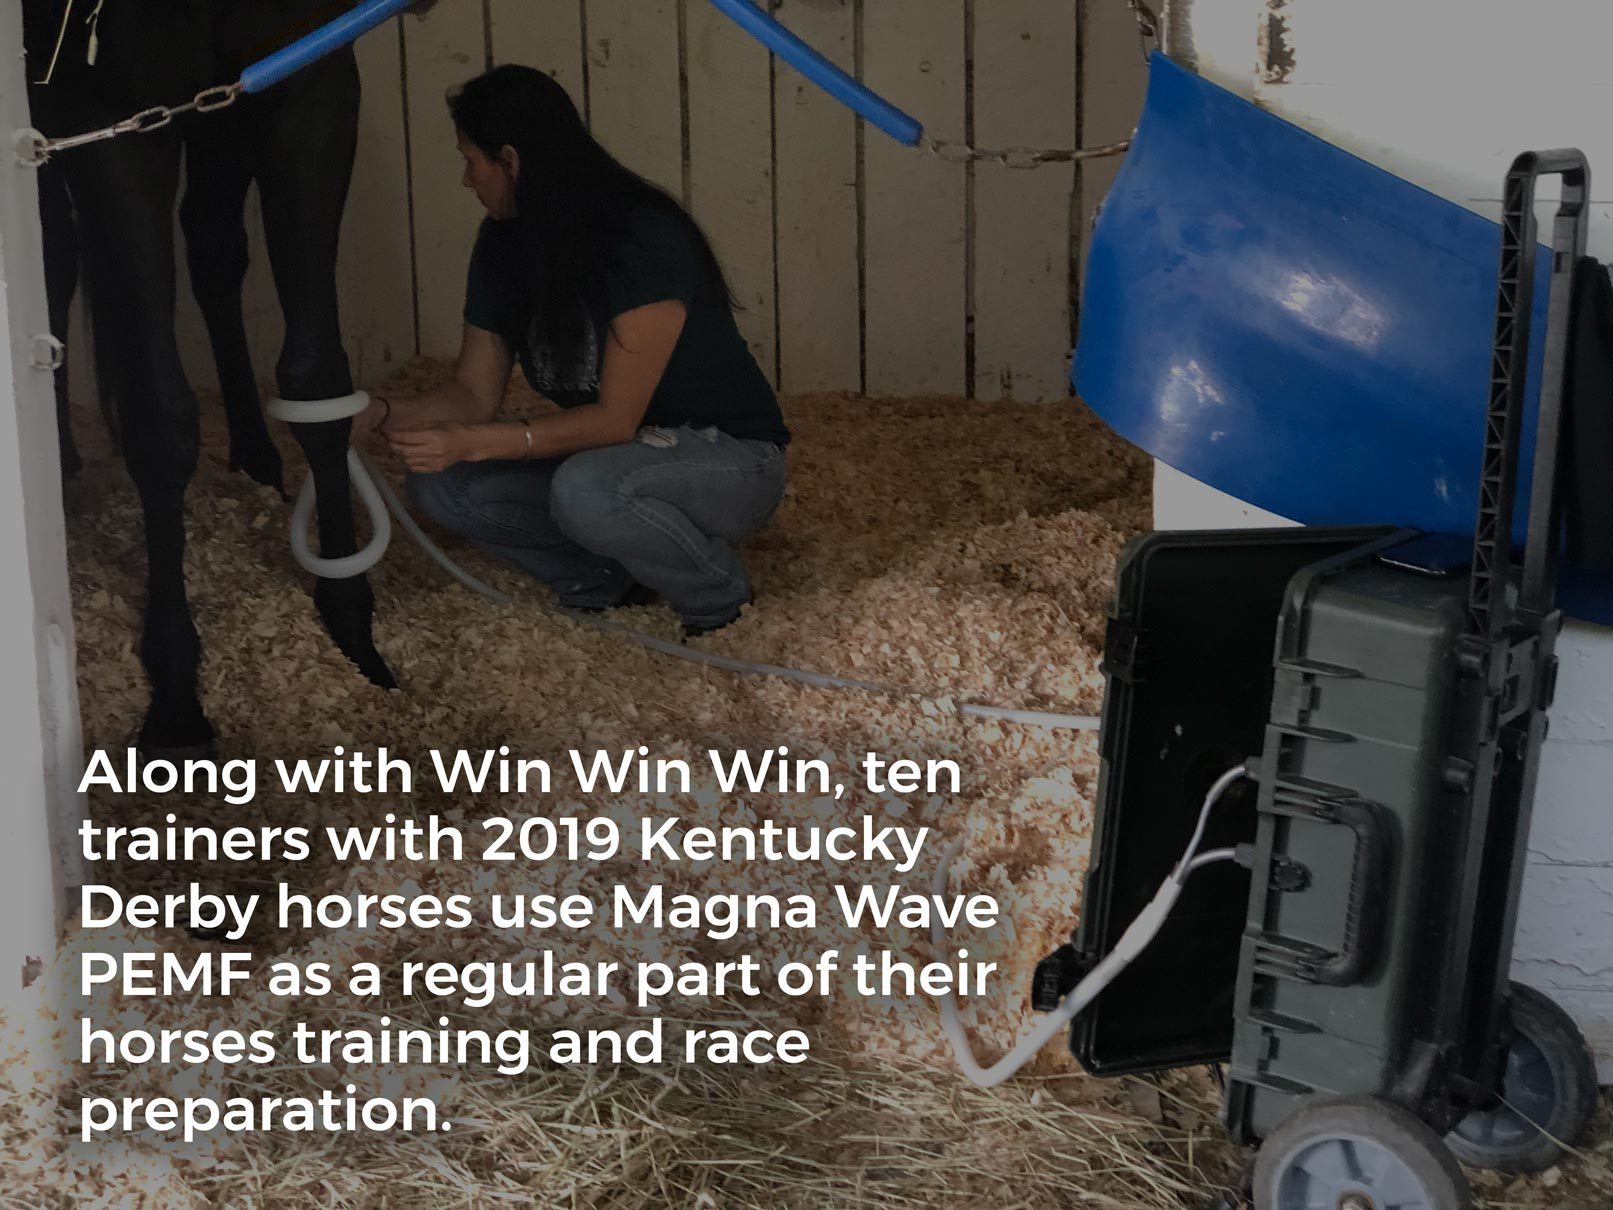 Along with Win Win Win, ten trainers with 2019 Kentucky Derby horses use Magna Wave PEMF as a regular part of their horses training and race preparation.